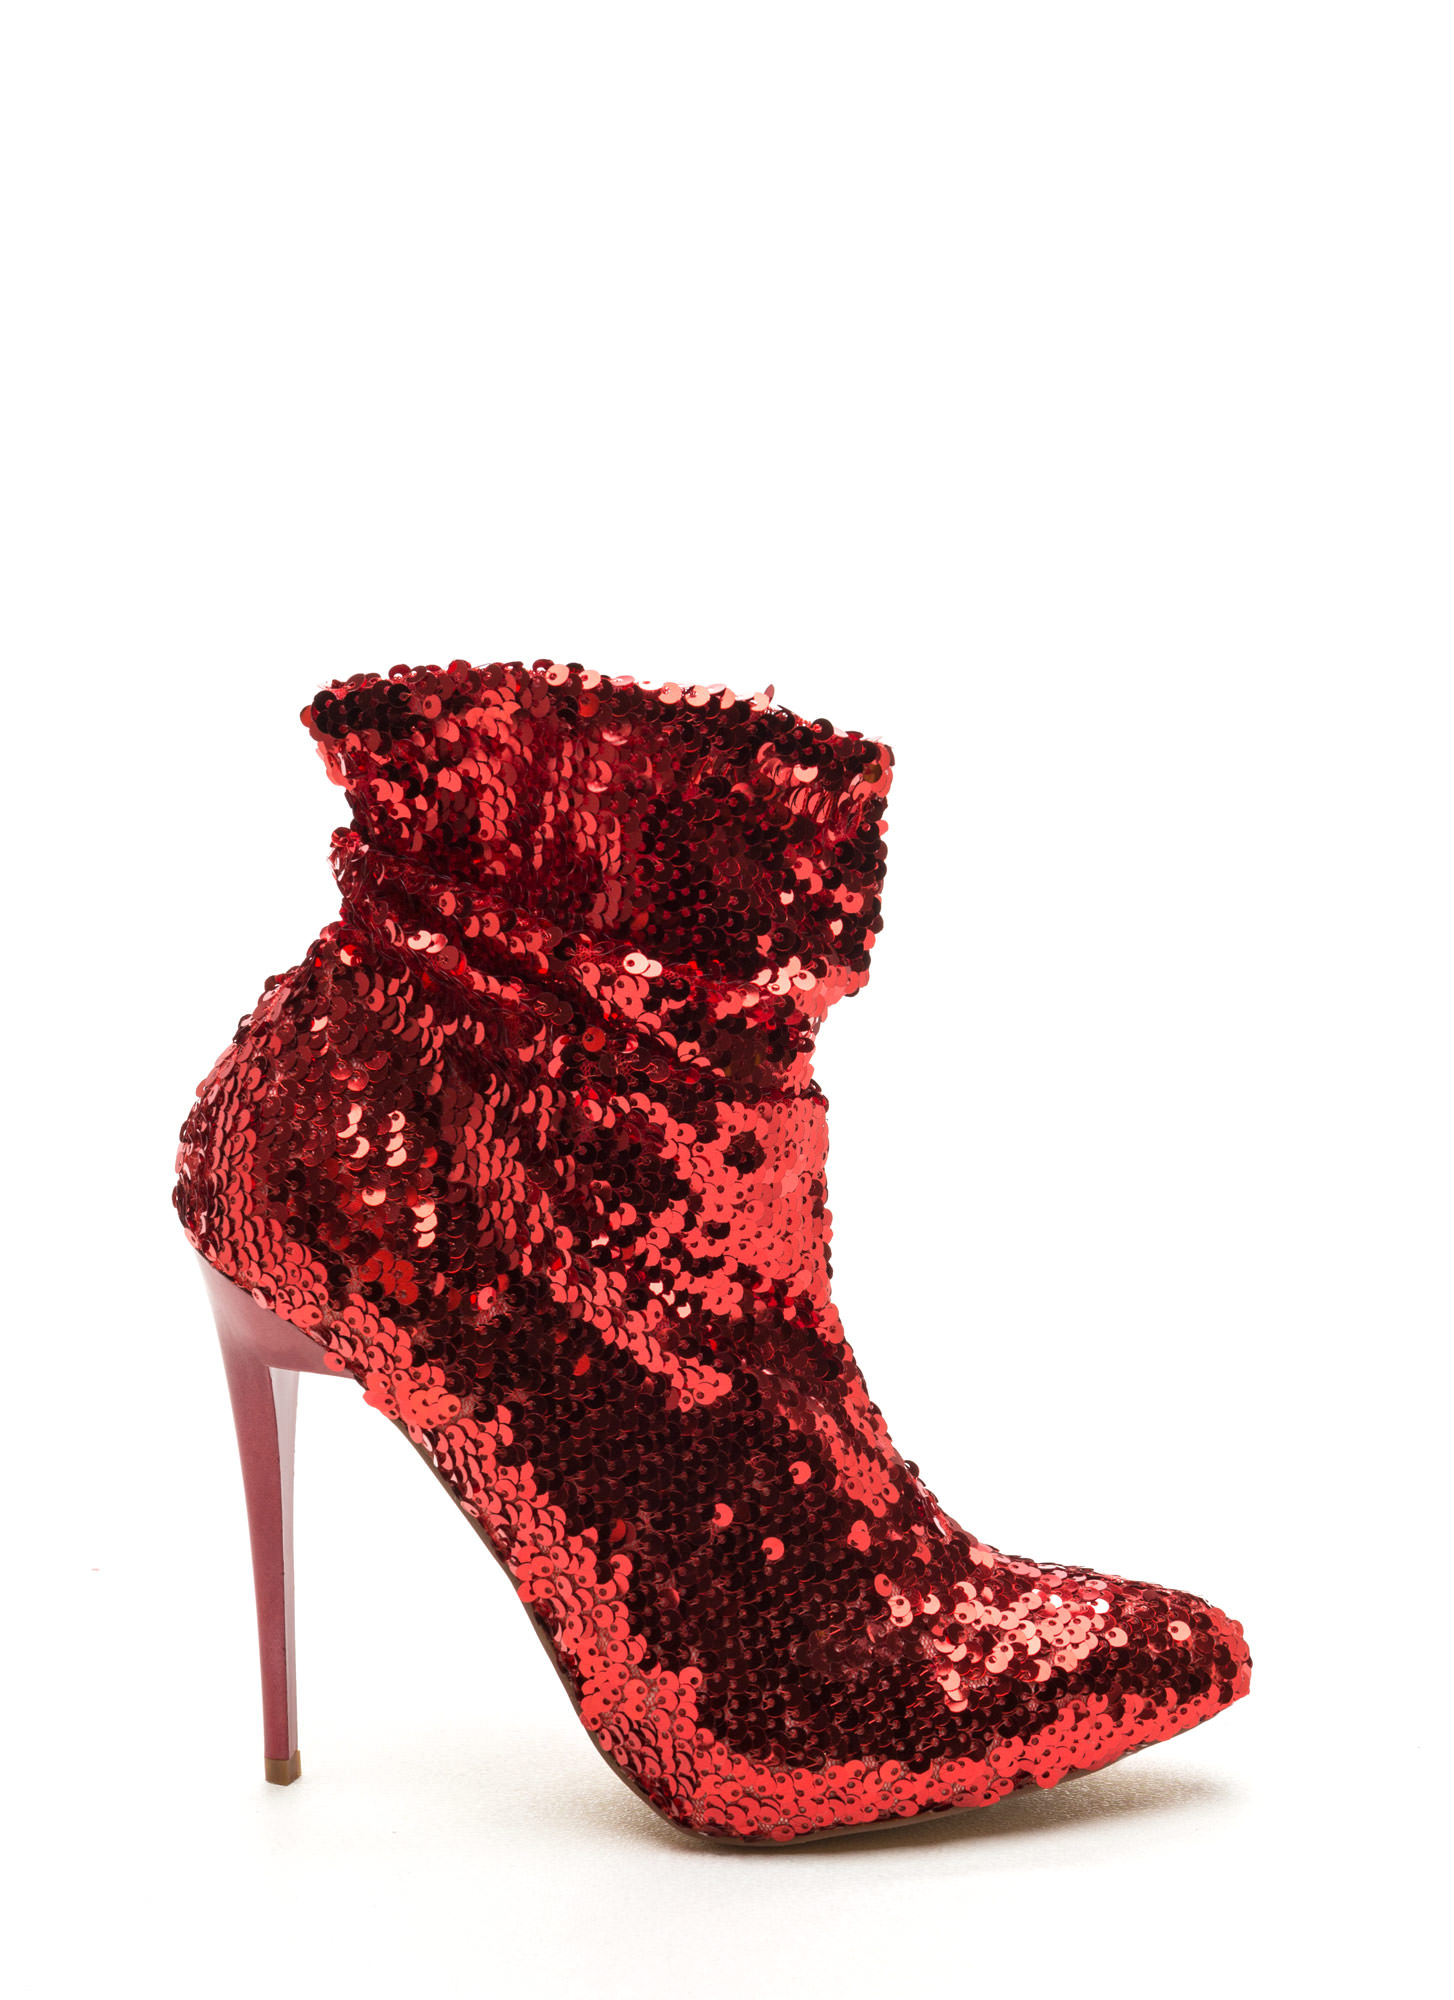 Sequin Chic Pointy Booties